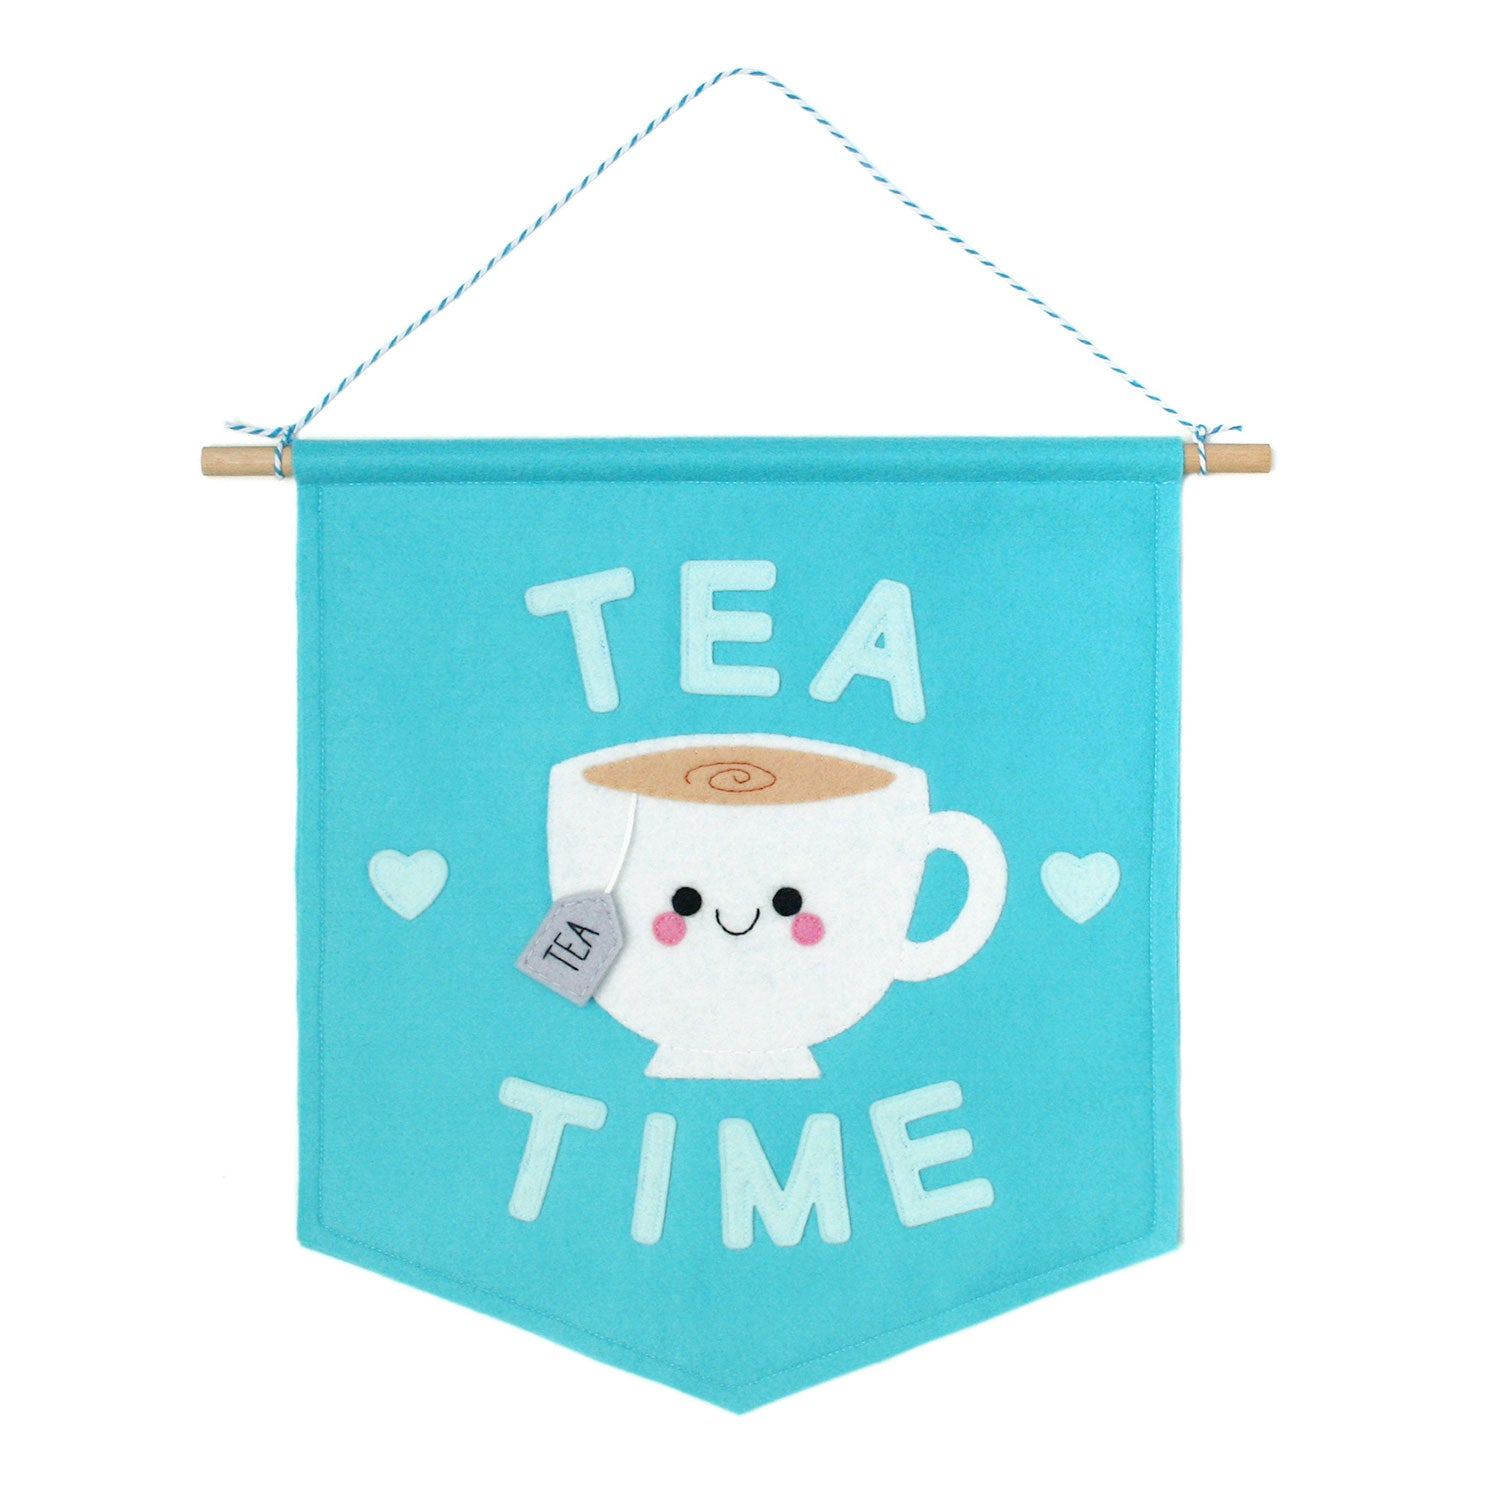 Blue felt banner with a happy teacup and 'TEA TIME' text